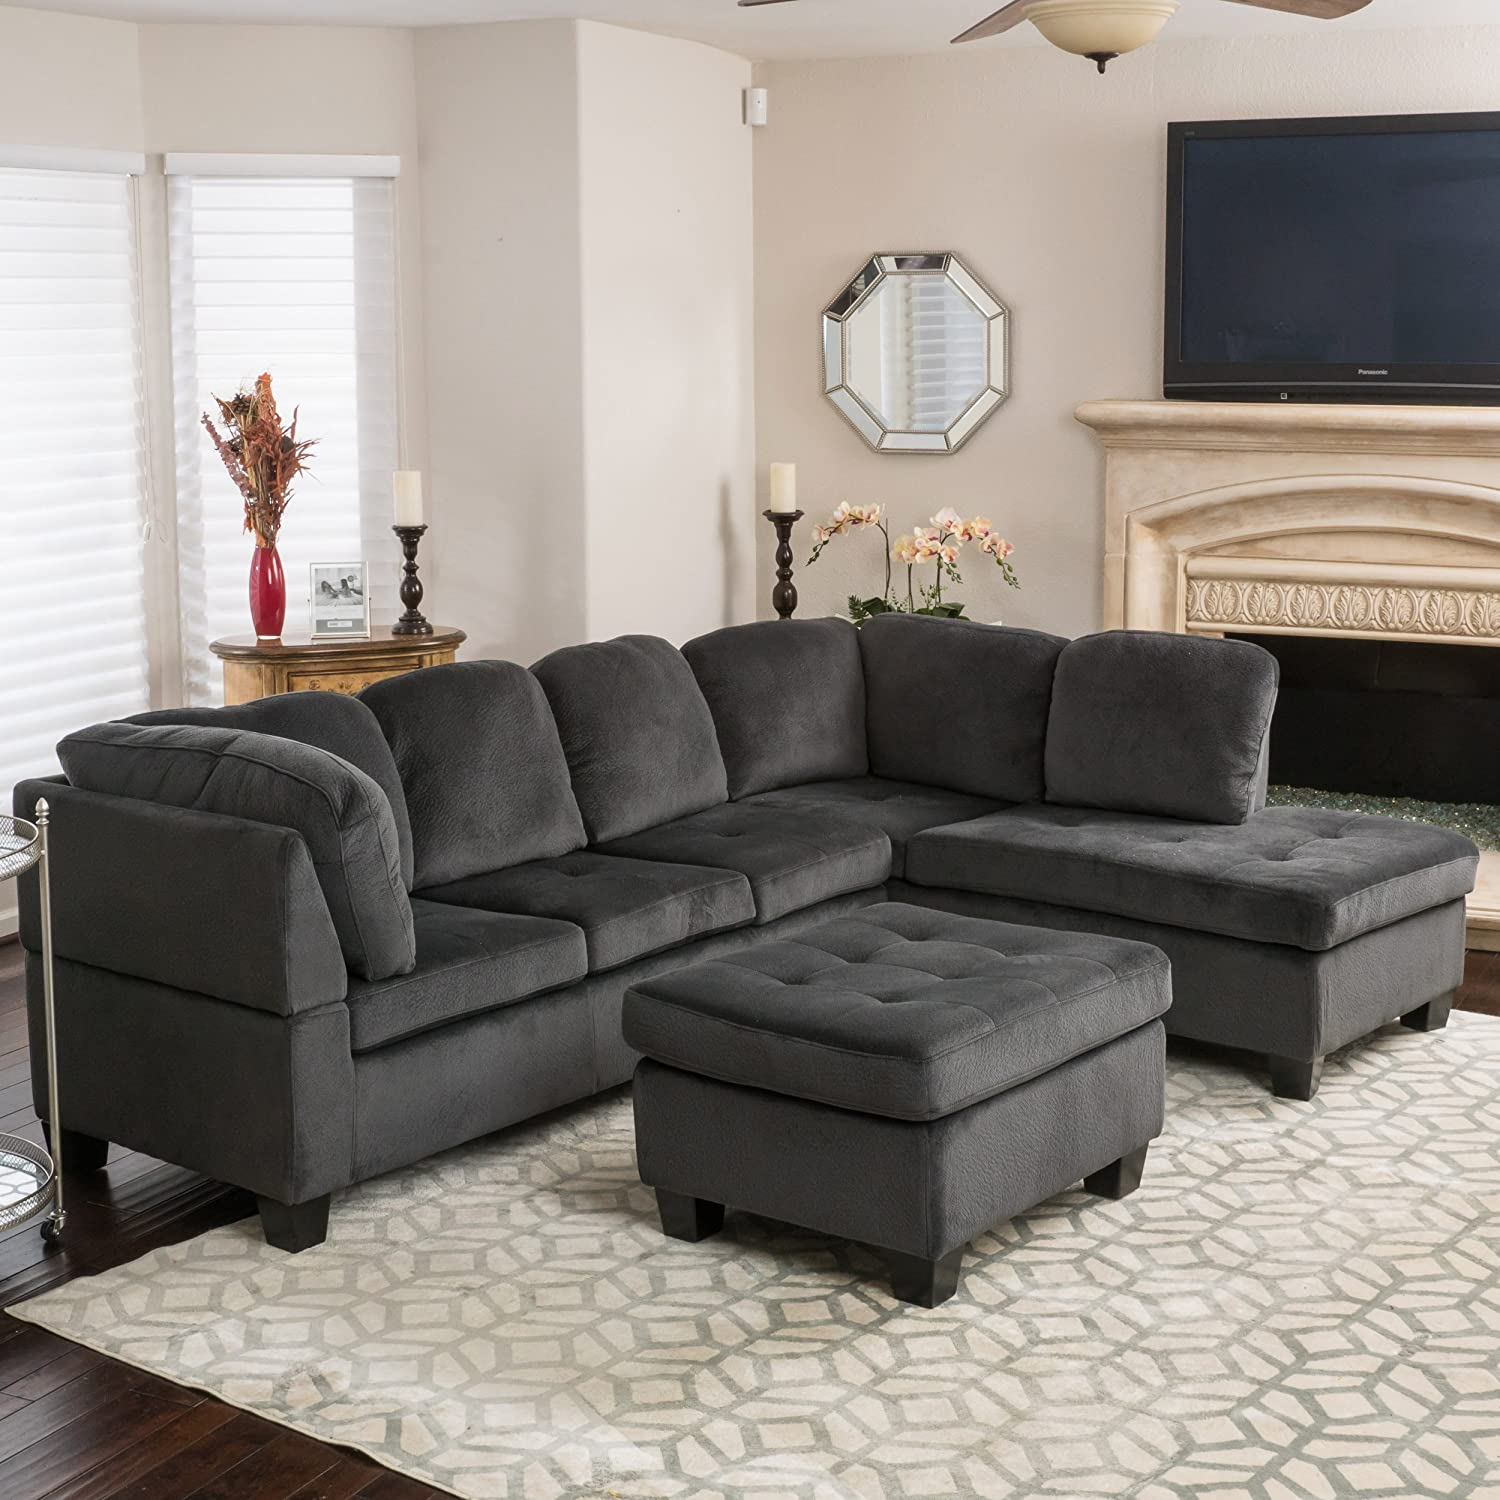 Amazon.com: Great Deal Furniture Gotham 3-piece Charcoal Fabric ...